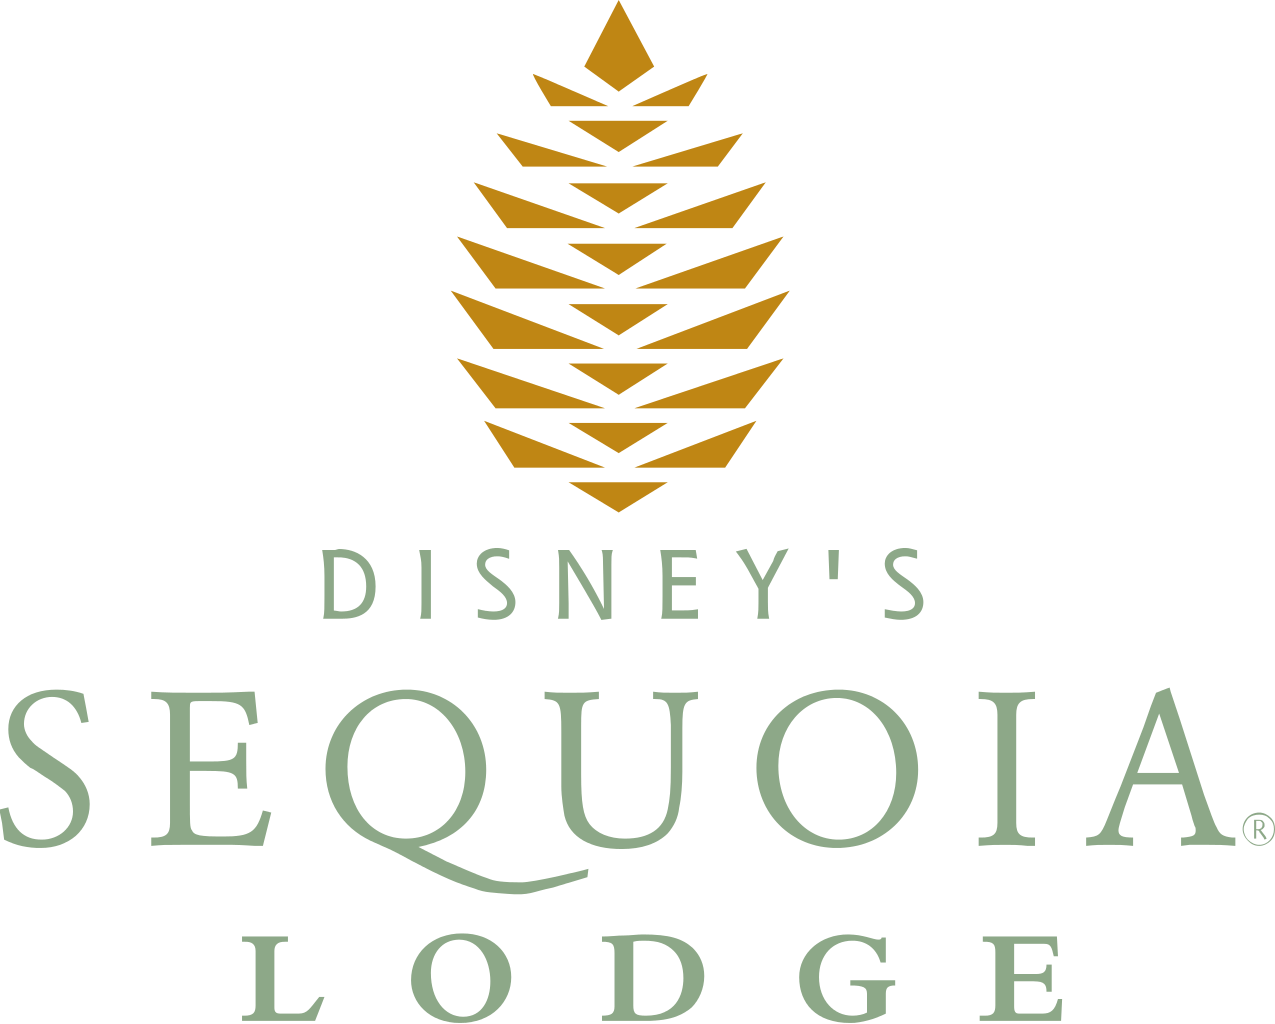 File:Disney's Sequoia Lodge logo.svg